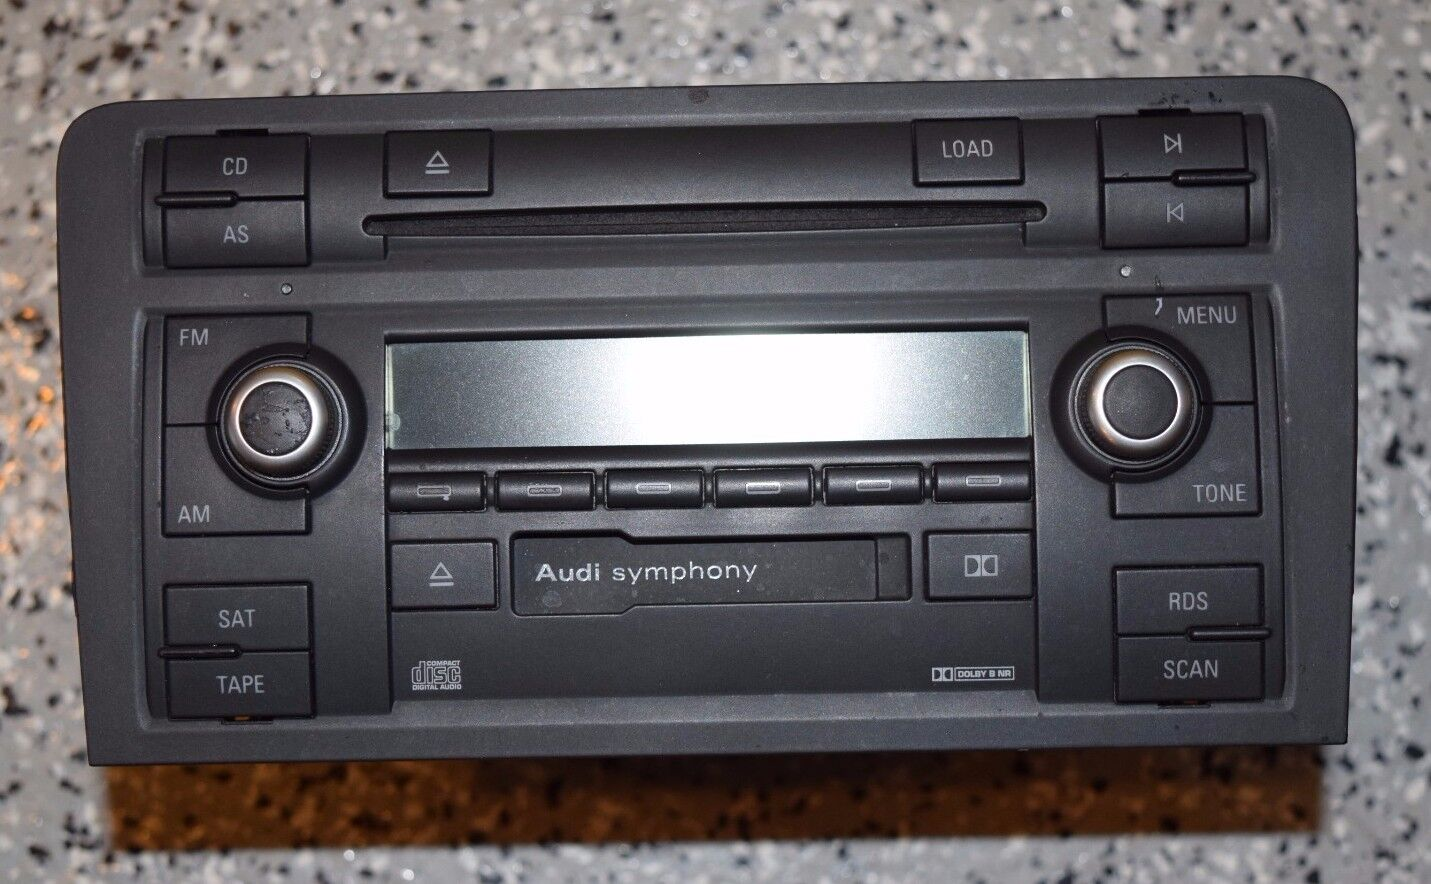 audi a3 symphony ii cd player radio stereo b7 2005 2006. Black Bedroom Furniture Sets. Home Design Ideas